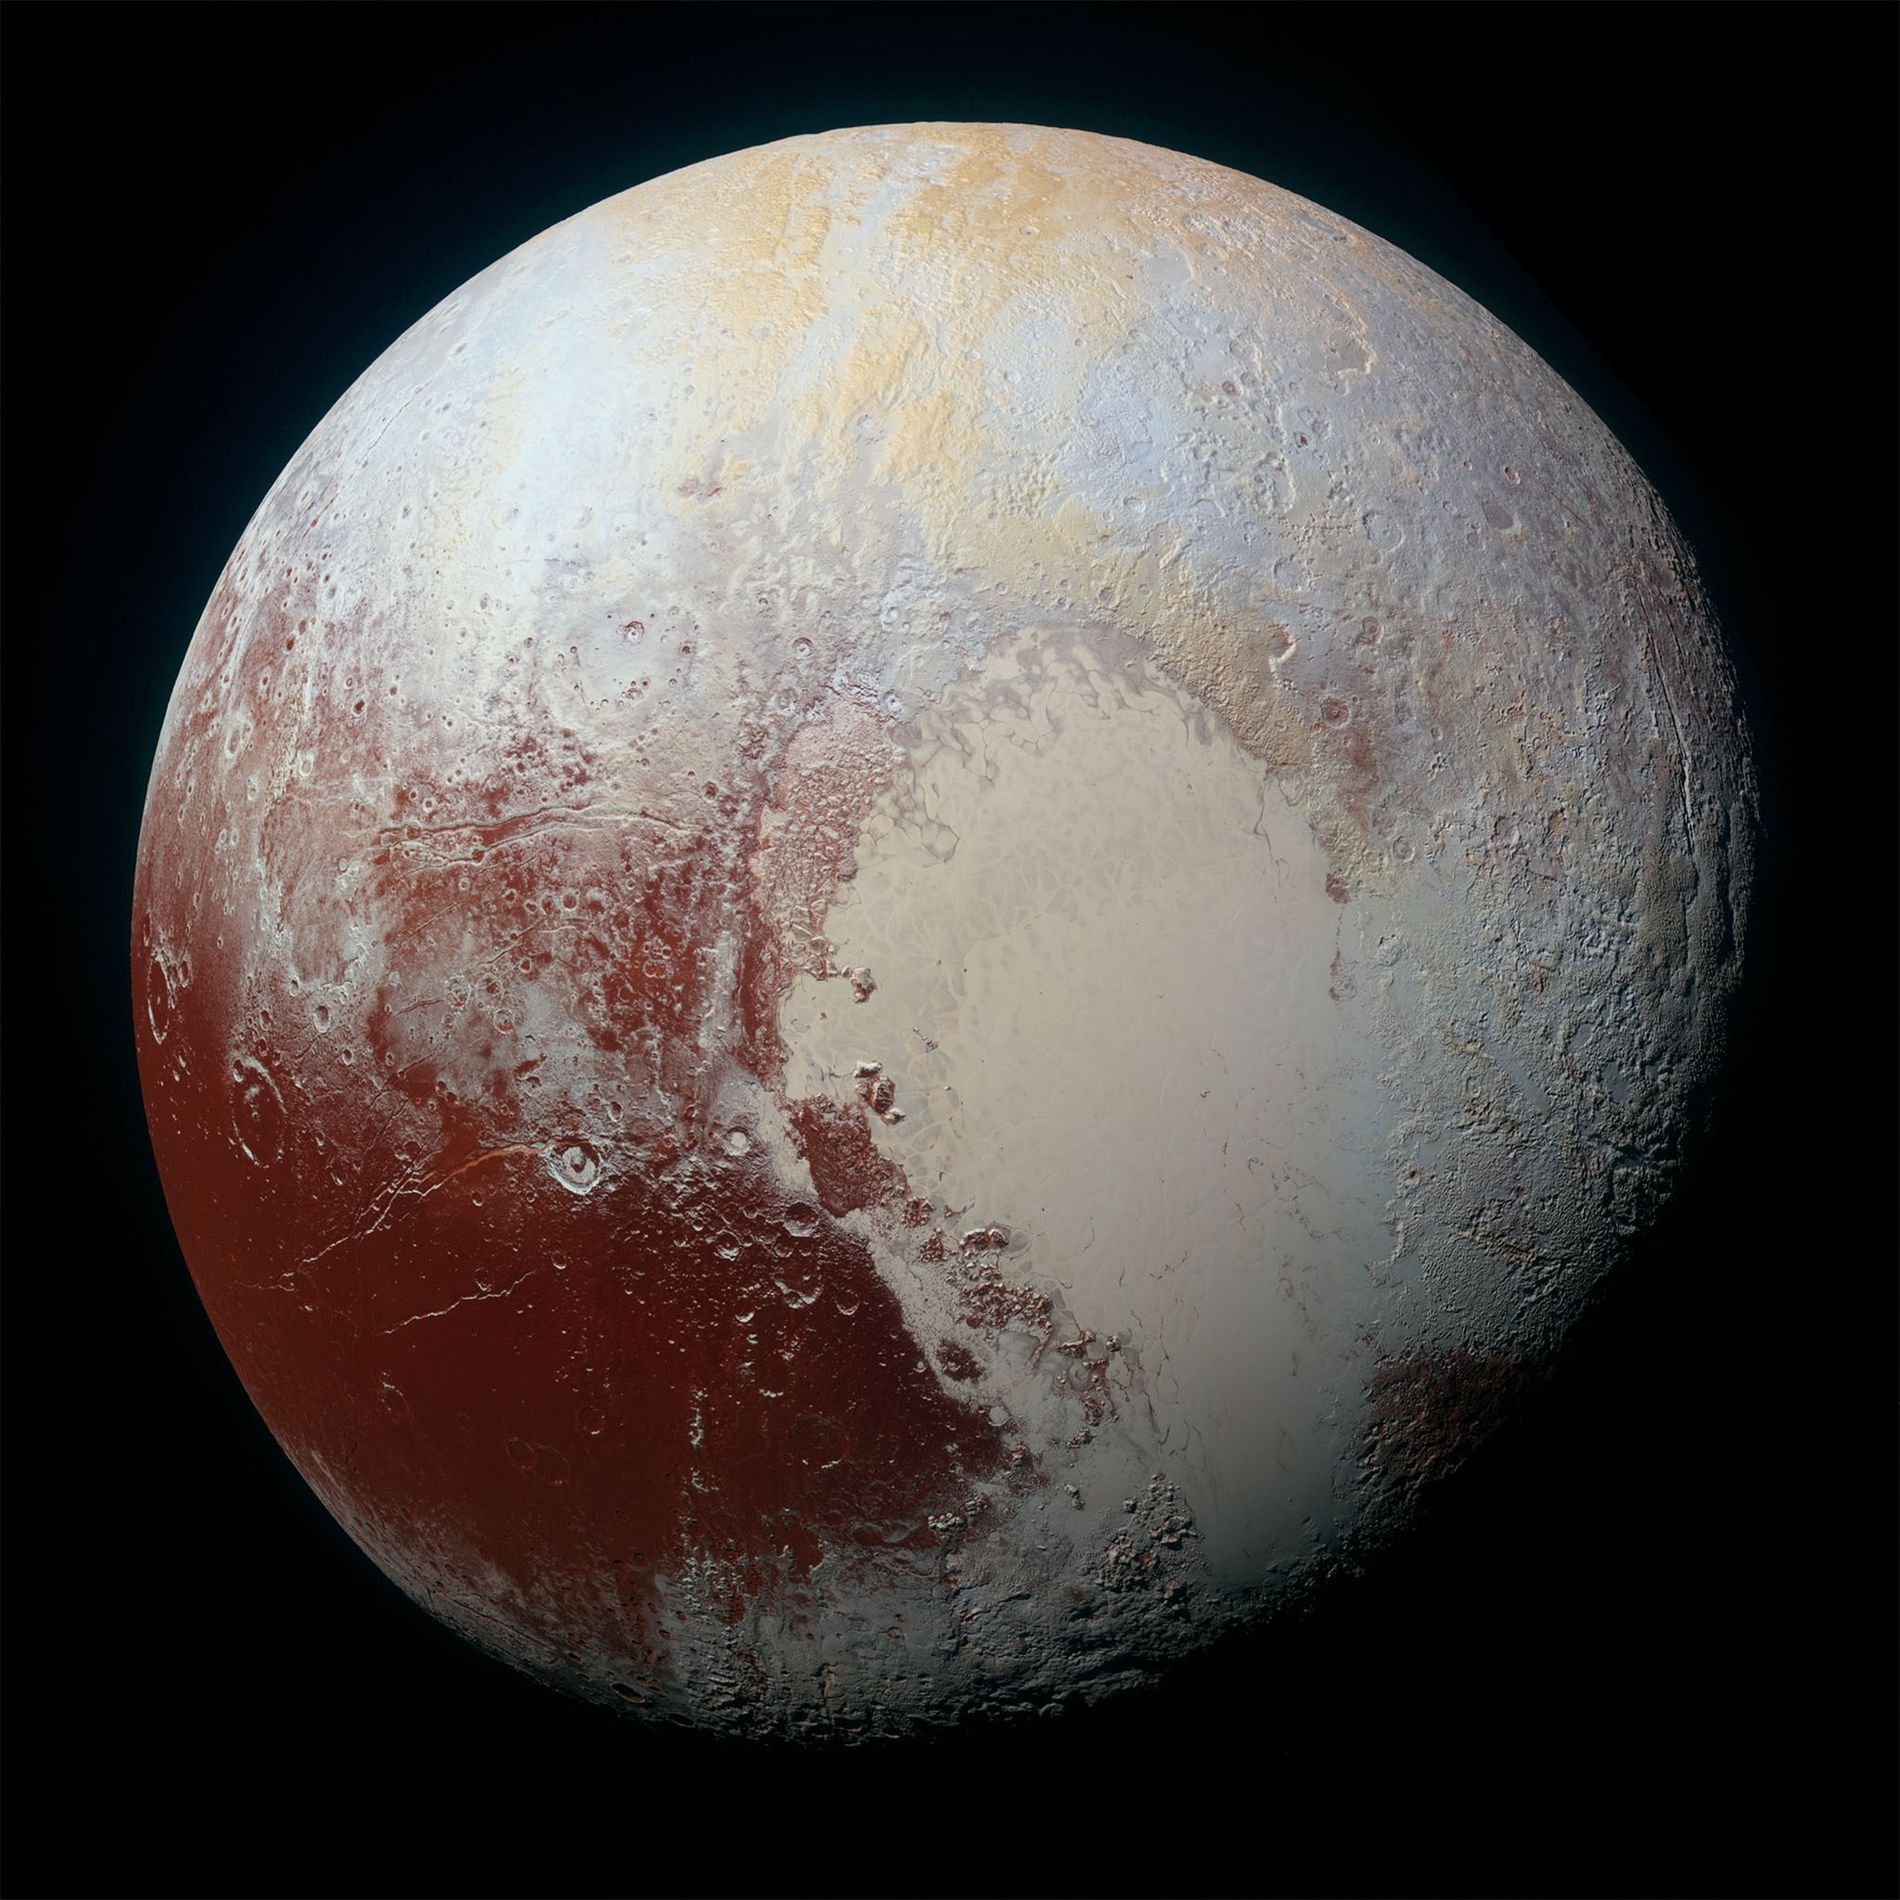 NASA's New Horizons spacecraft captured this high-resolution, enhanced-colour view of Pluto on July 14, 2015.